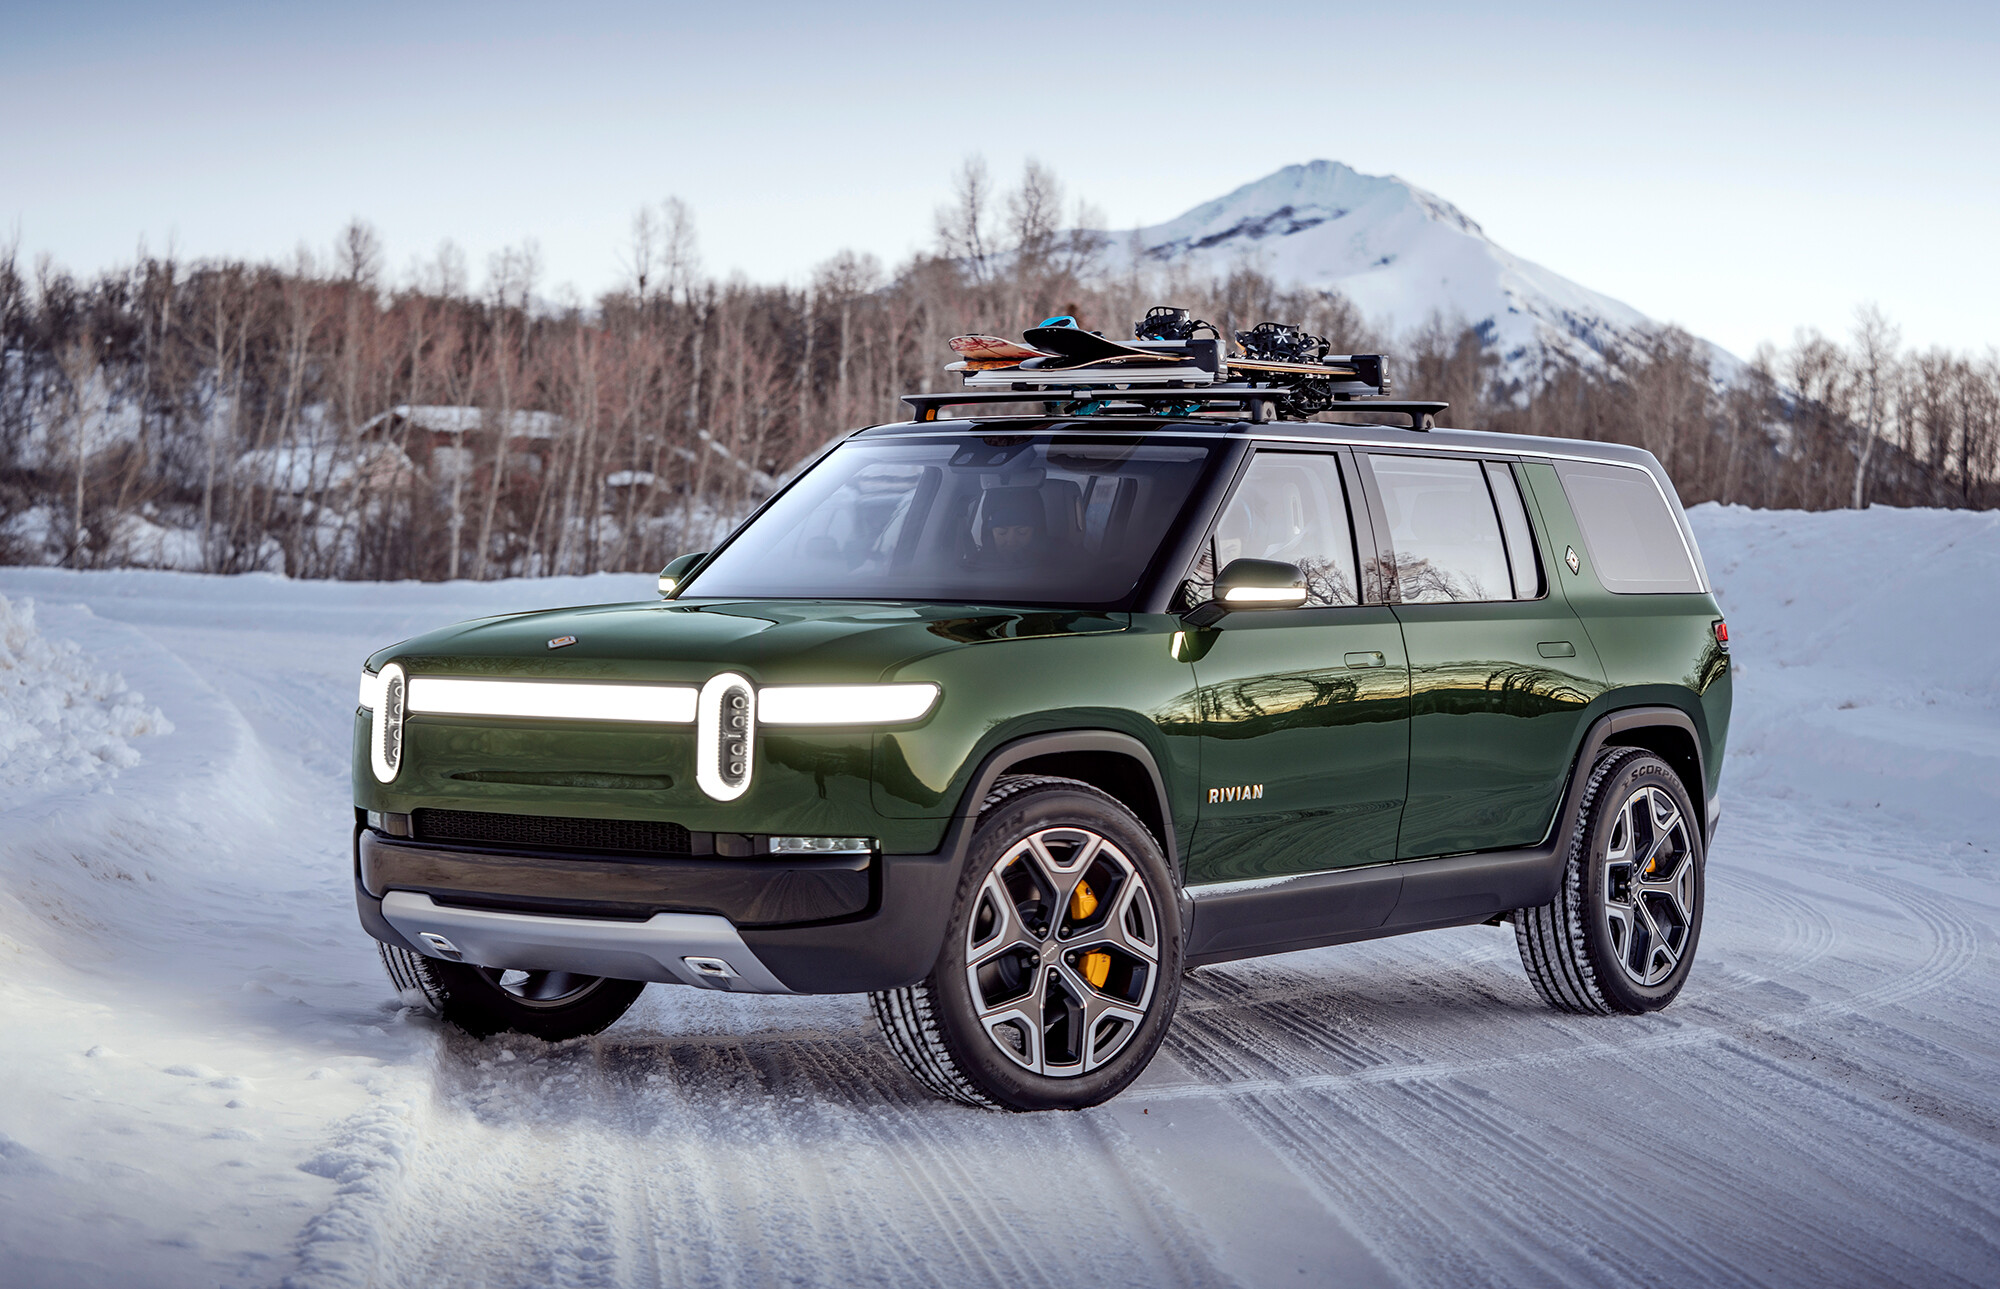 Rivian is no Tesla. That's exactly what these buyers want